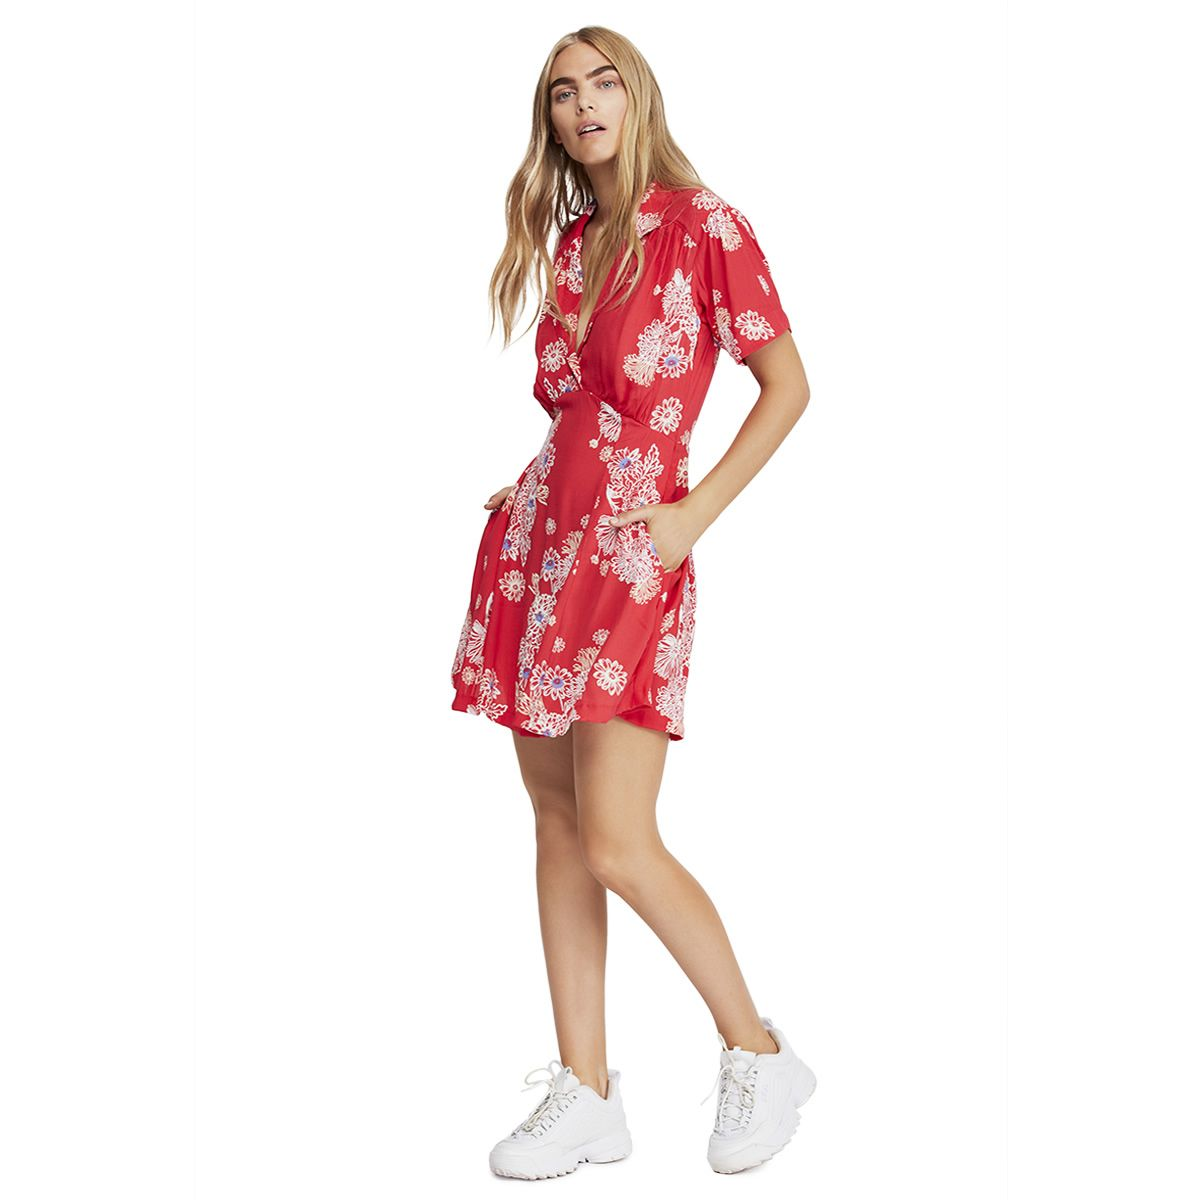 484e56c311 Free People Dresses for Women - Macy s